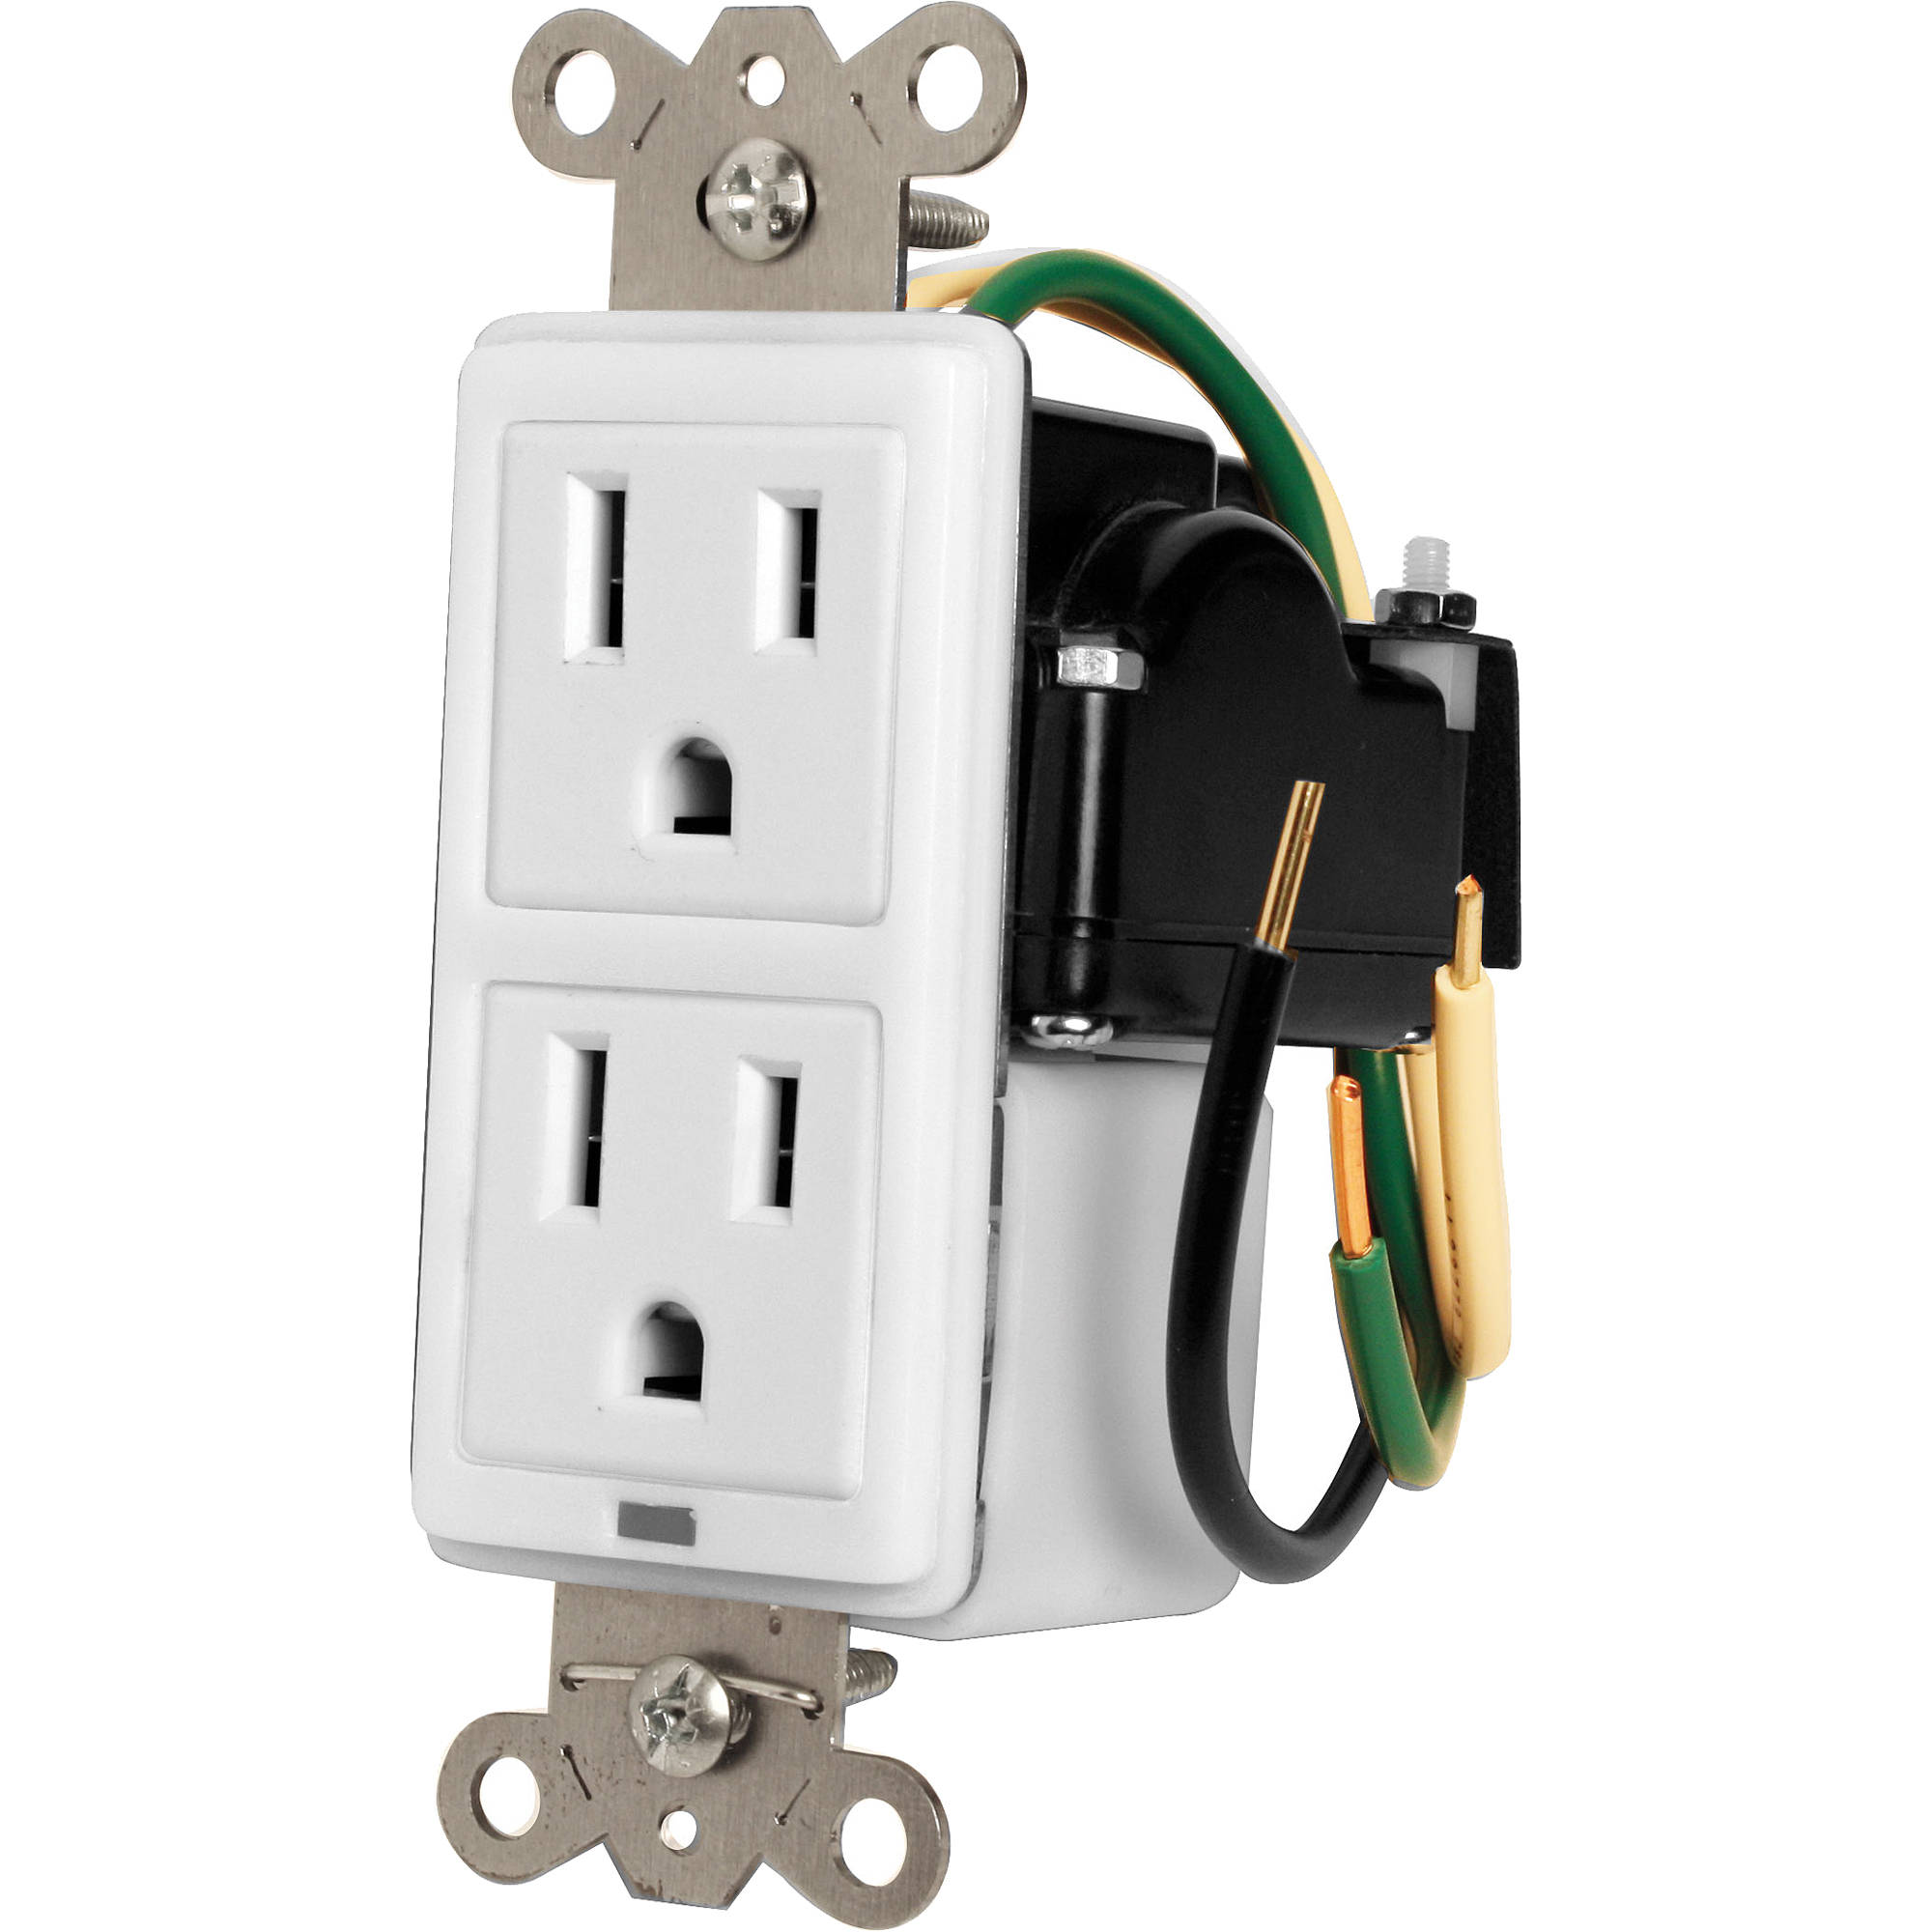 Furman Miw Surge In Wall Protection System 1g Poi Ethernet Jack Wiring